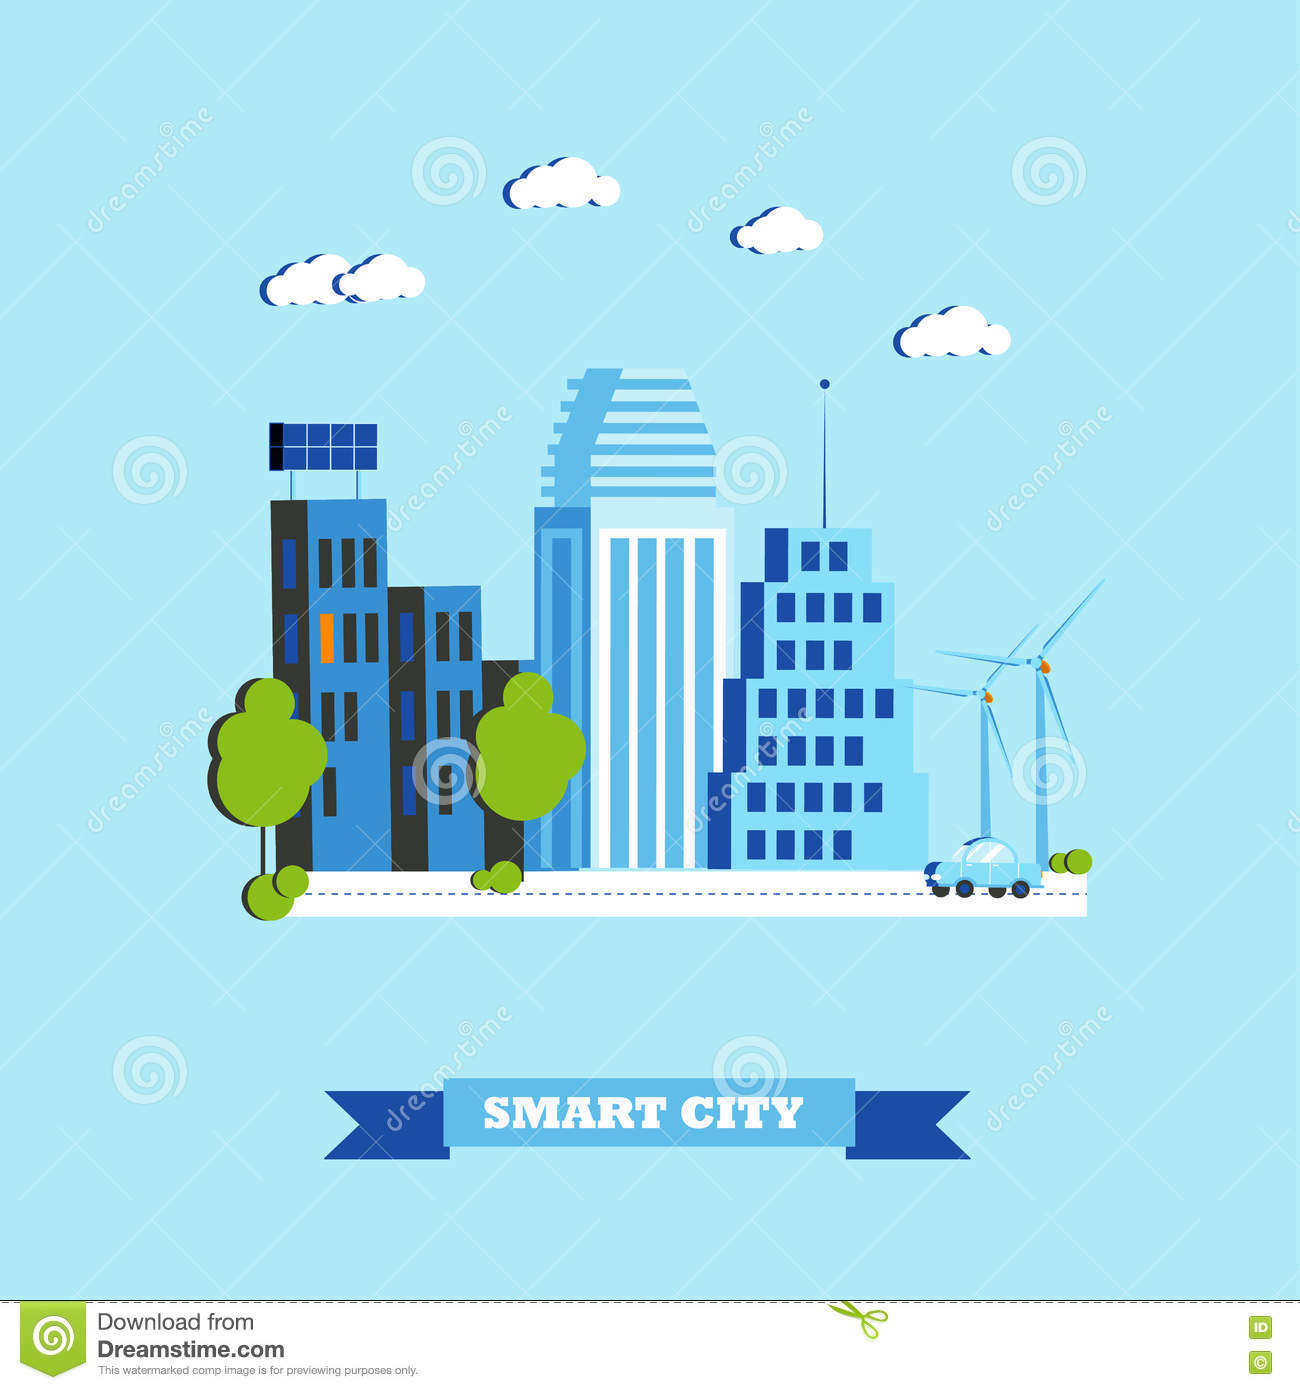 how to draw a smart city